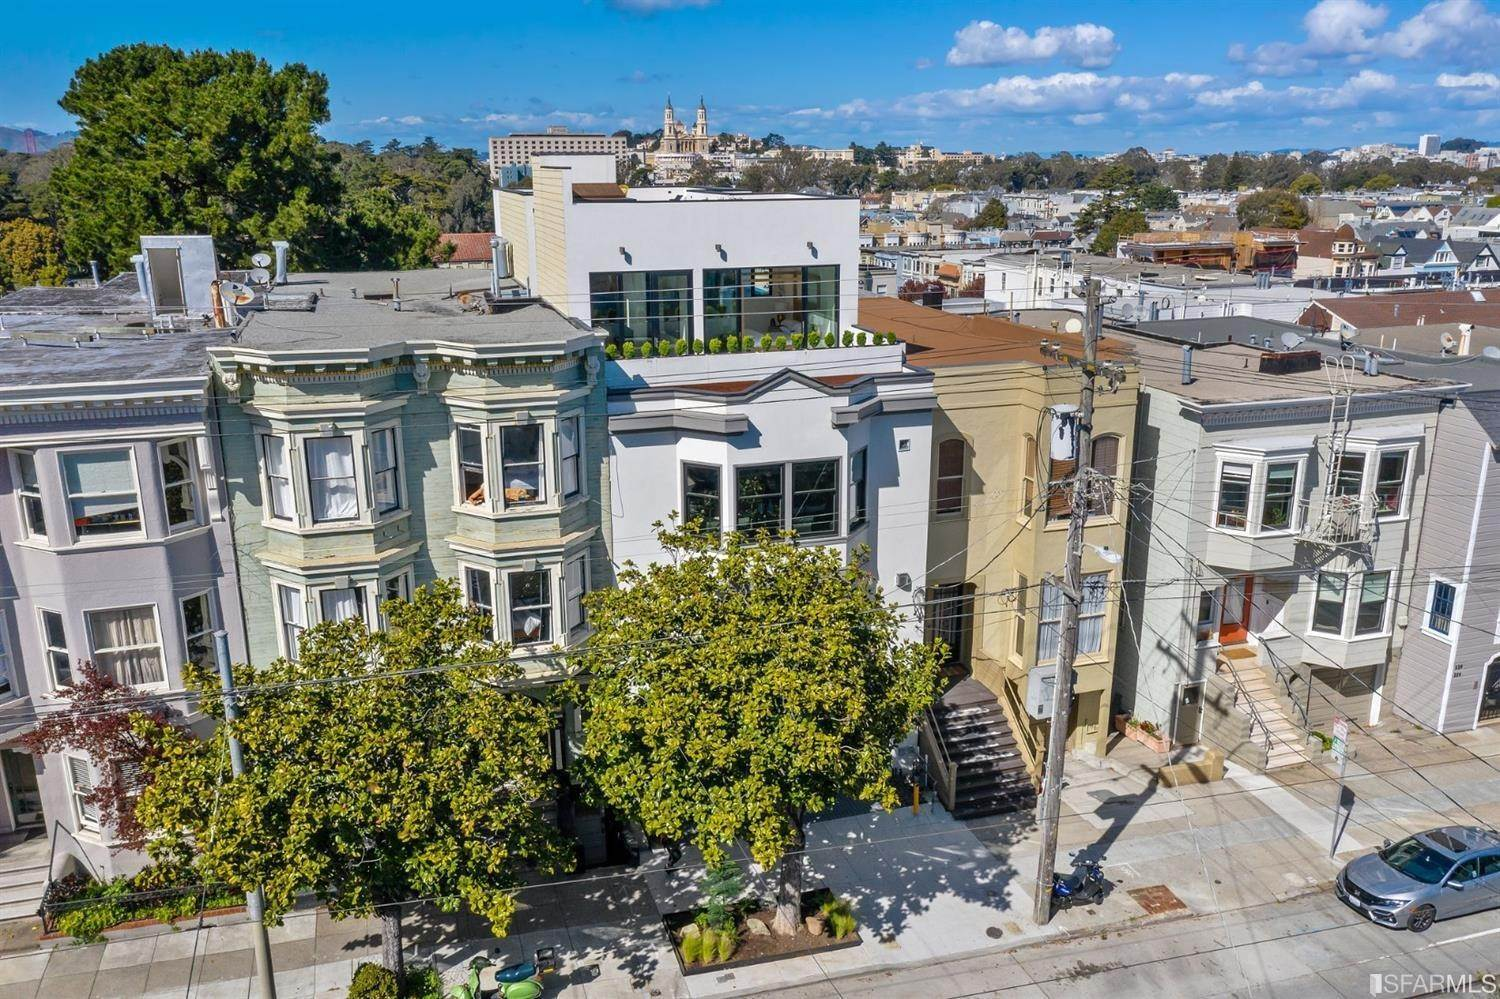 Tenancy In Common for Sale at 246 Carl Street San Francisco, California 94117 United States